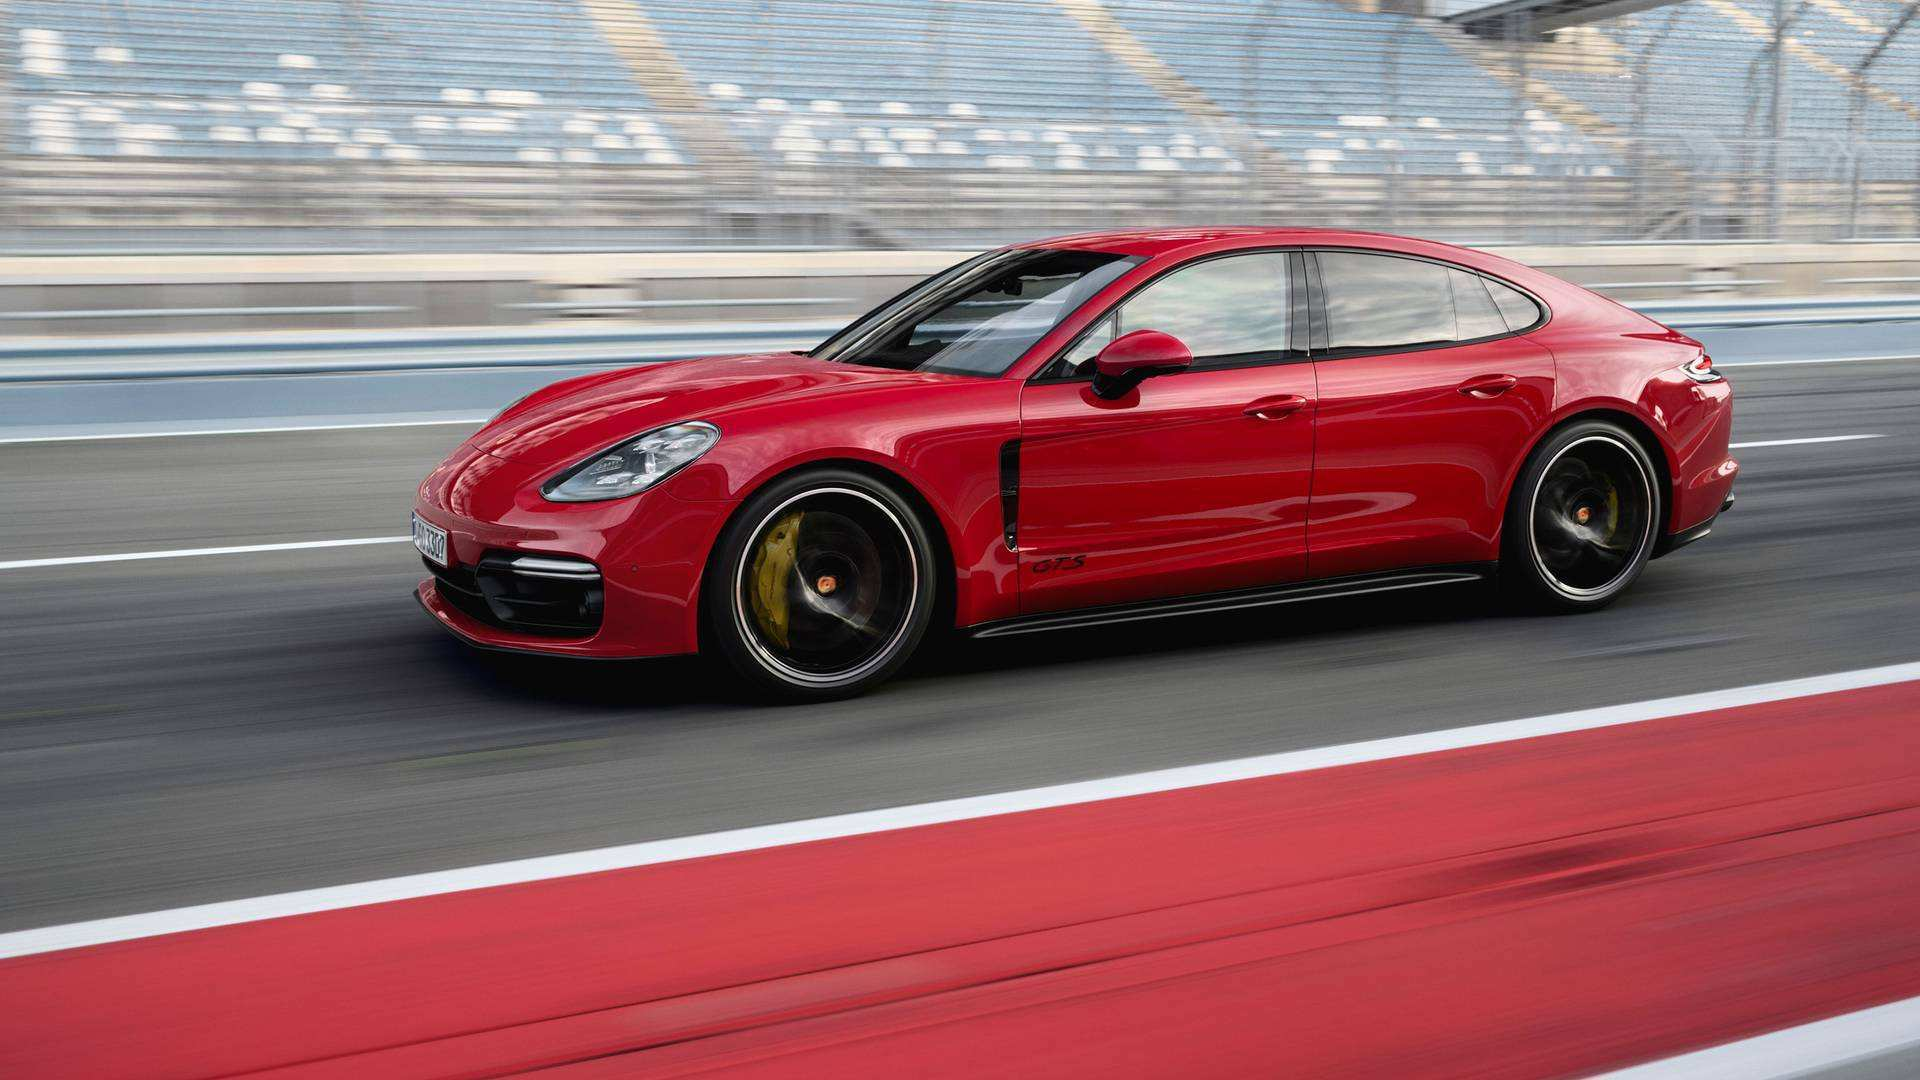 75 The Best 2019 The Porsche Panamera Images